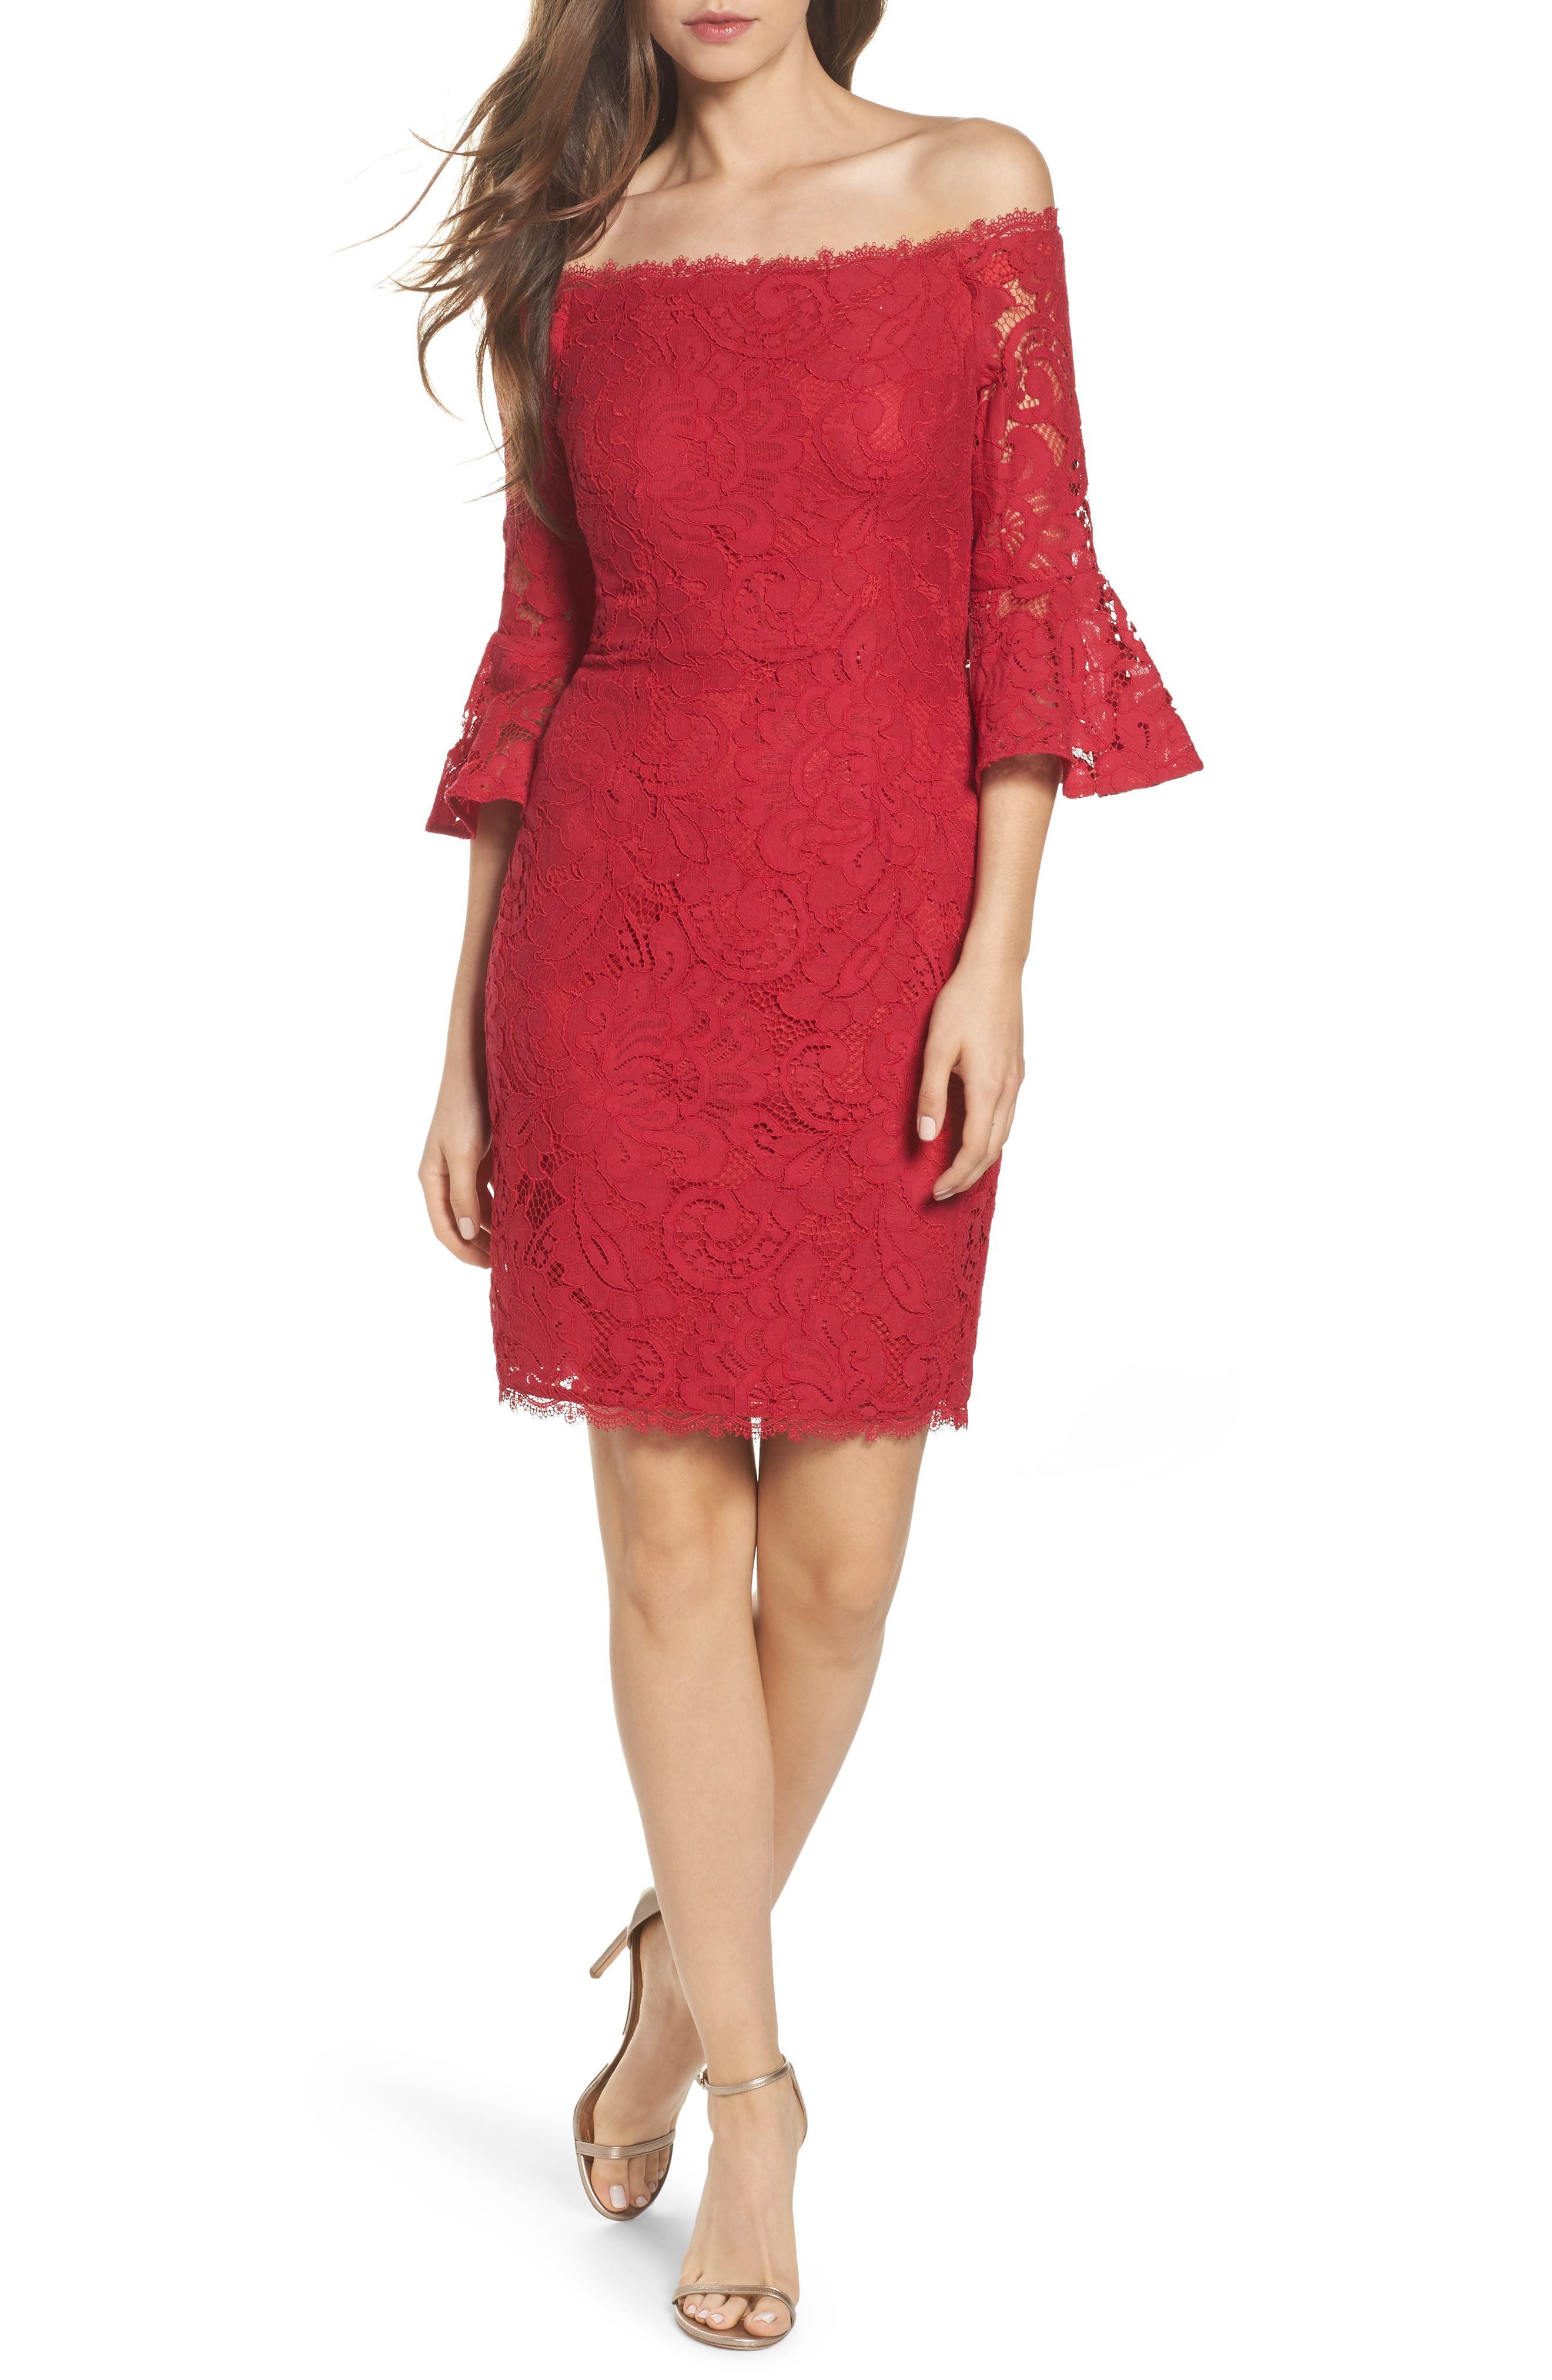 Alternate Image 1 Selected - Adrianna Papell Off the Shoulder Lace Sheath Dress